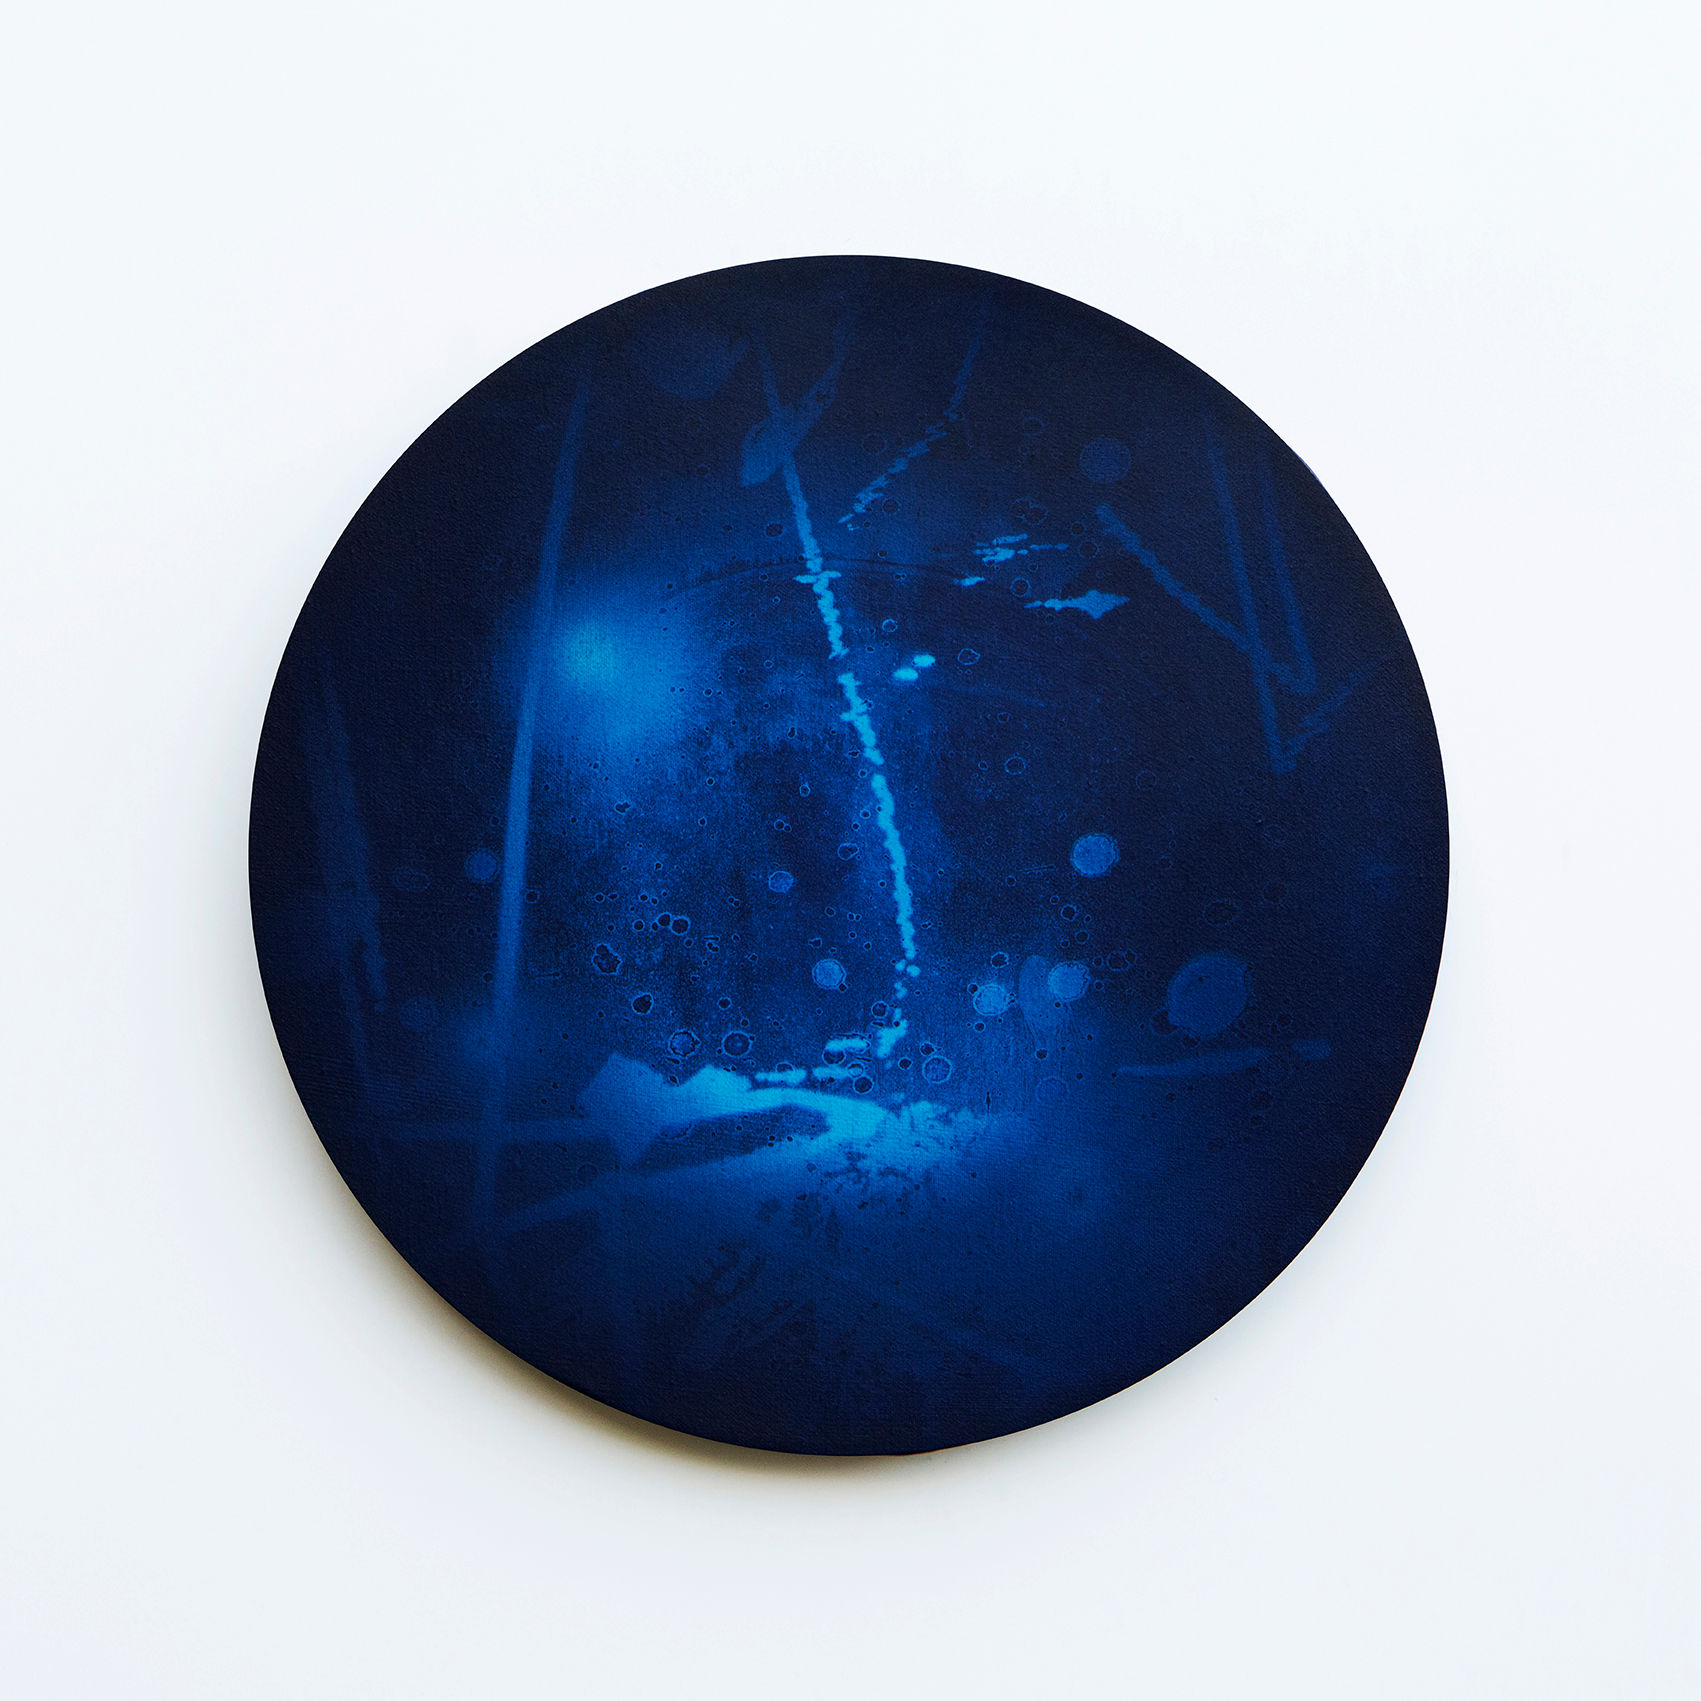 WATERSCAPE_내 안의 바깥 47, Diameter 40cm, Traditional pigment, water-print, water-drawing on canvas, 2018